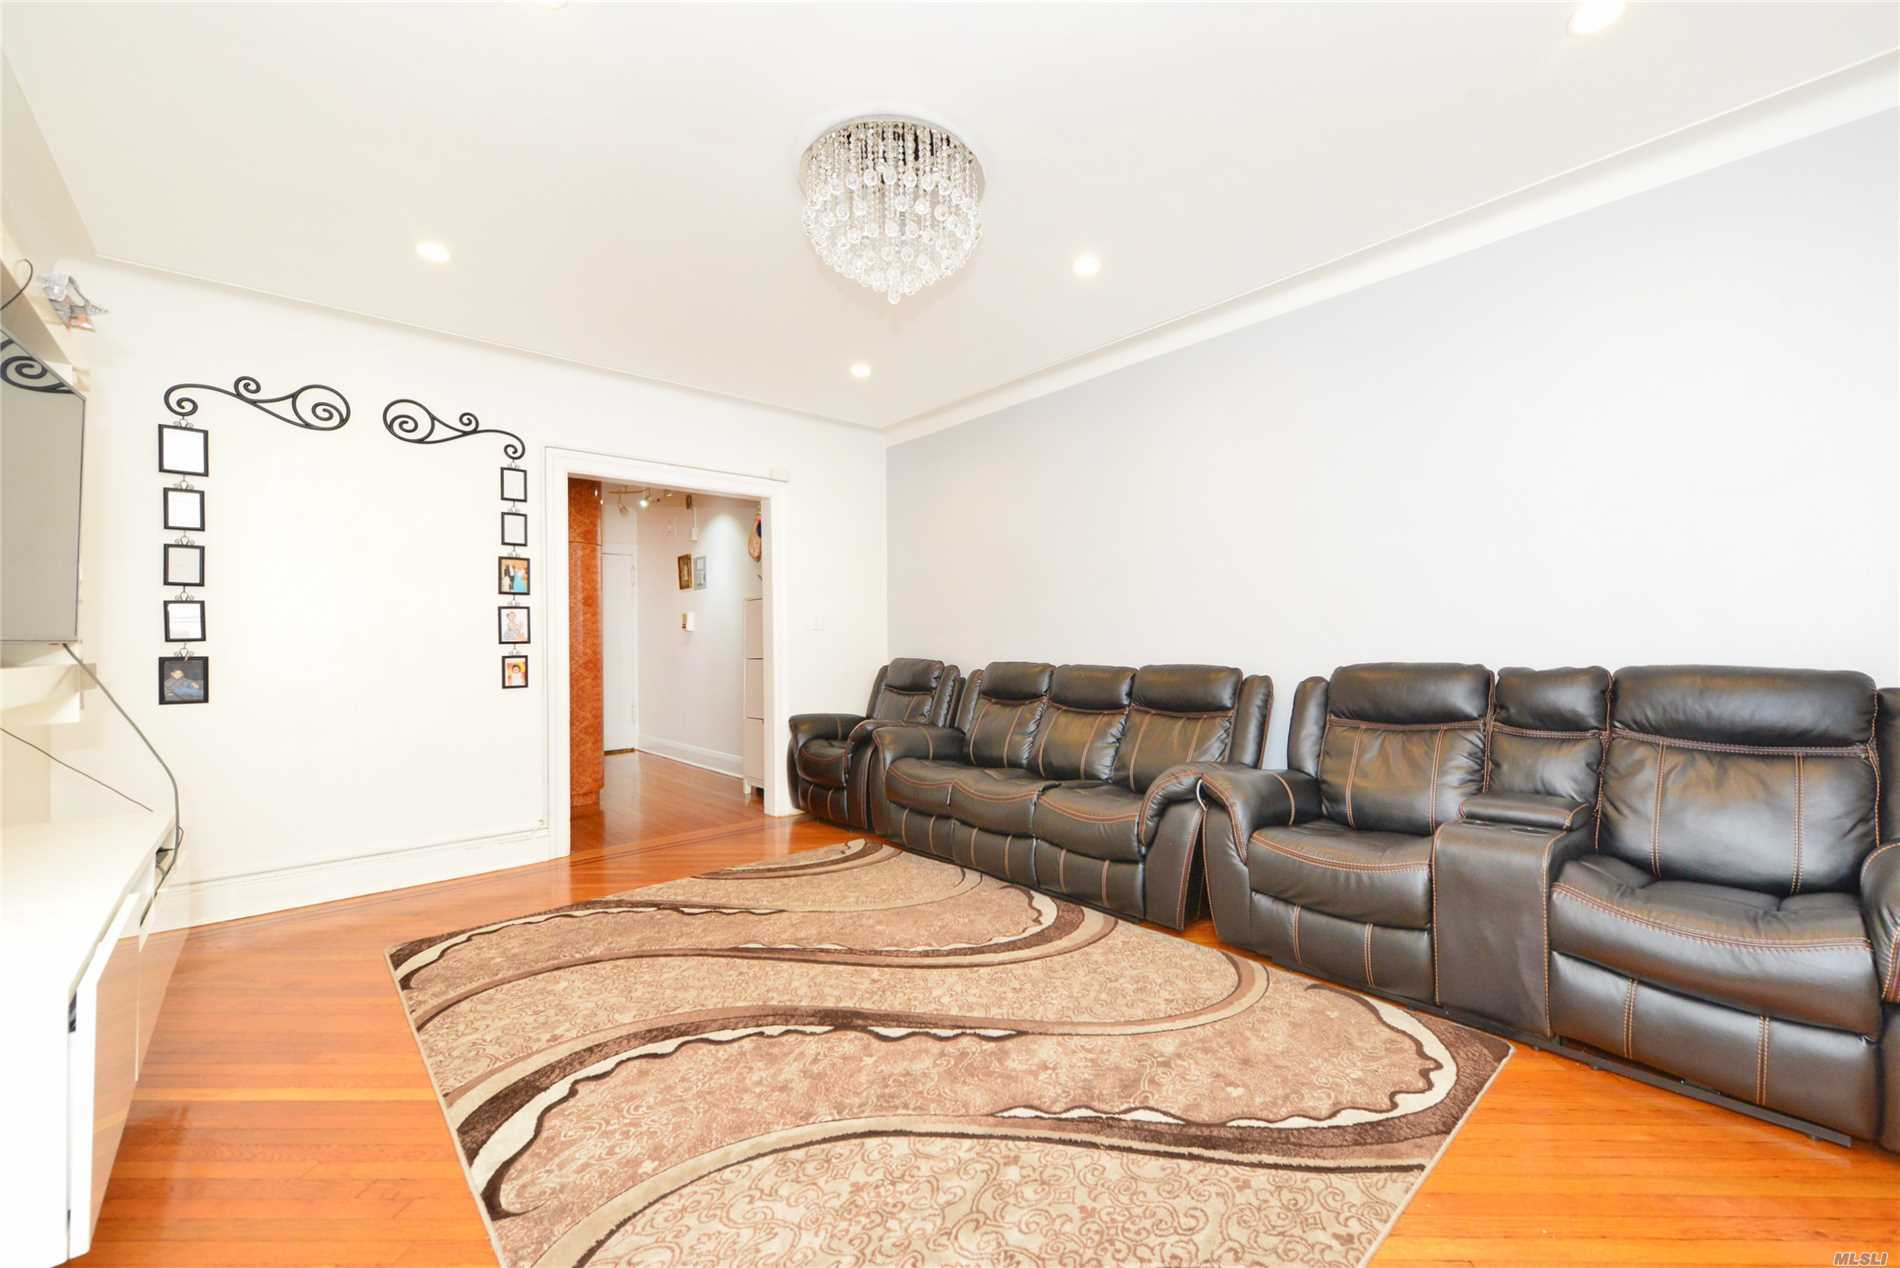 This Well Maintained Classic Pre-War Building Features A Beautiful, 2 Bedroom Apartment In The Heart Rego Park. Bright Living Room & Bedrooms. L-Shaped Living/Dining Room. Plenty Of Closet Space. Close To Shops And Transportation.